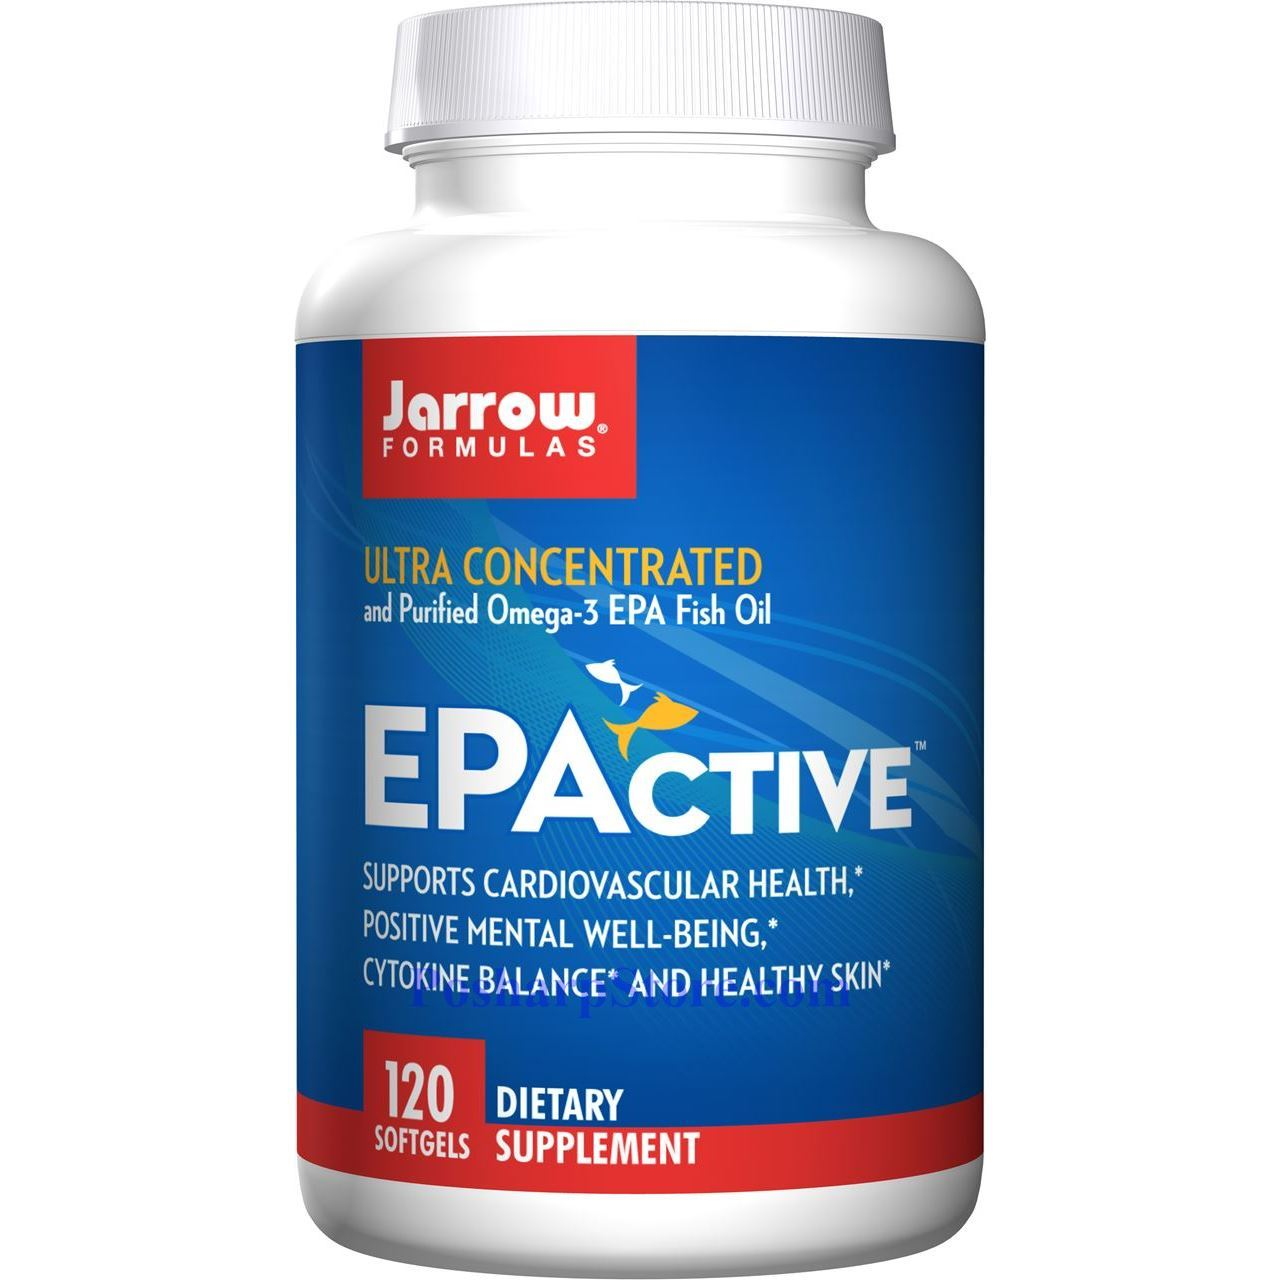 Picture for category Jarrow Formulas EPActive Ultra Concentrated and Purified Omega-3 EPA Fish Oil 120 Softgels